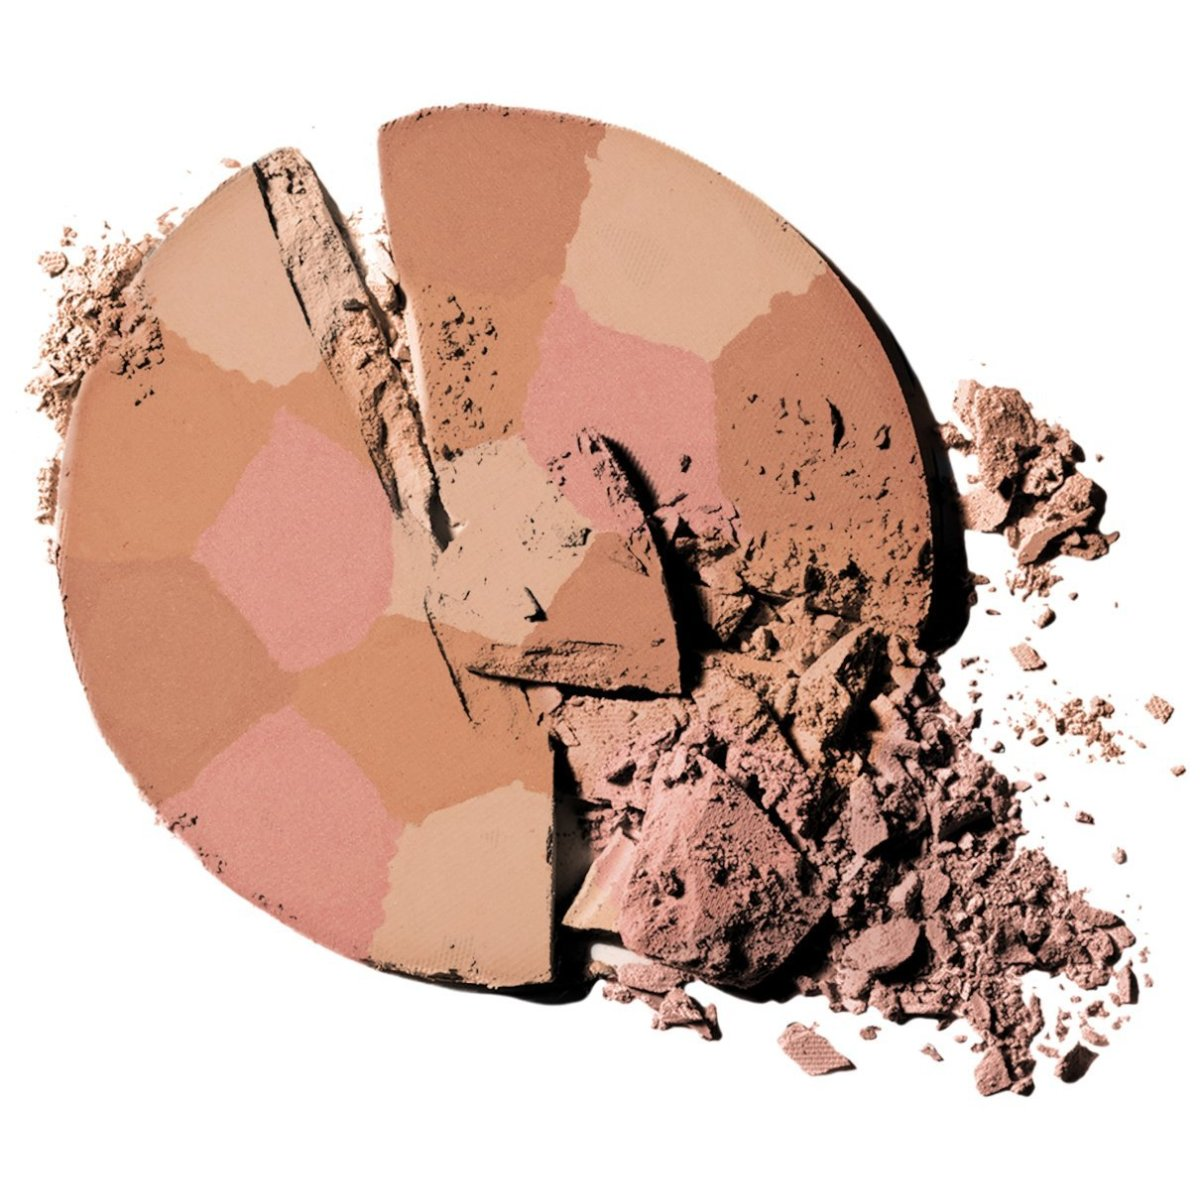 Powder Palette® Multi-Colored Blush | Physicians Formula | Product swatch image with no background